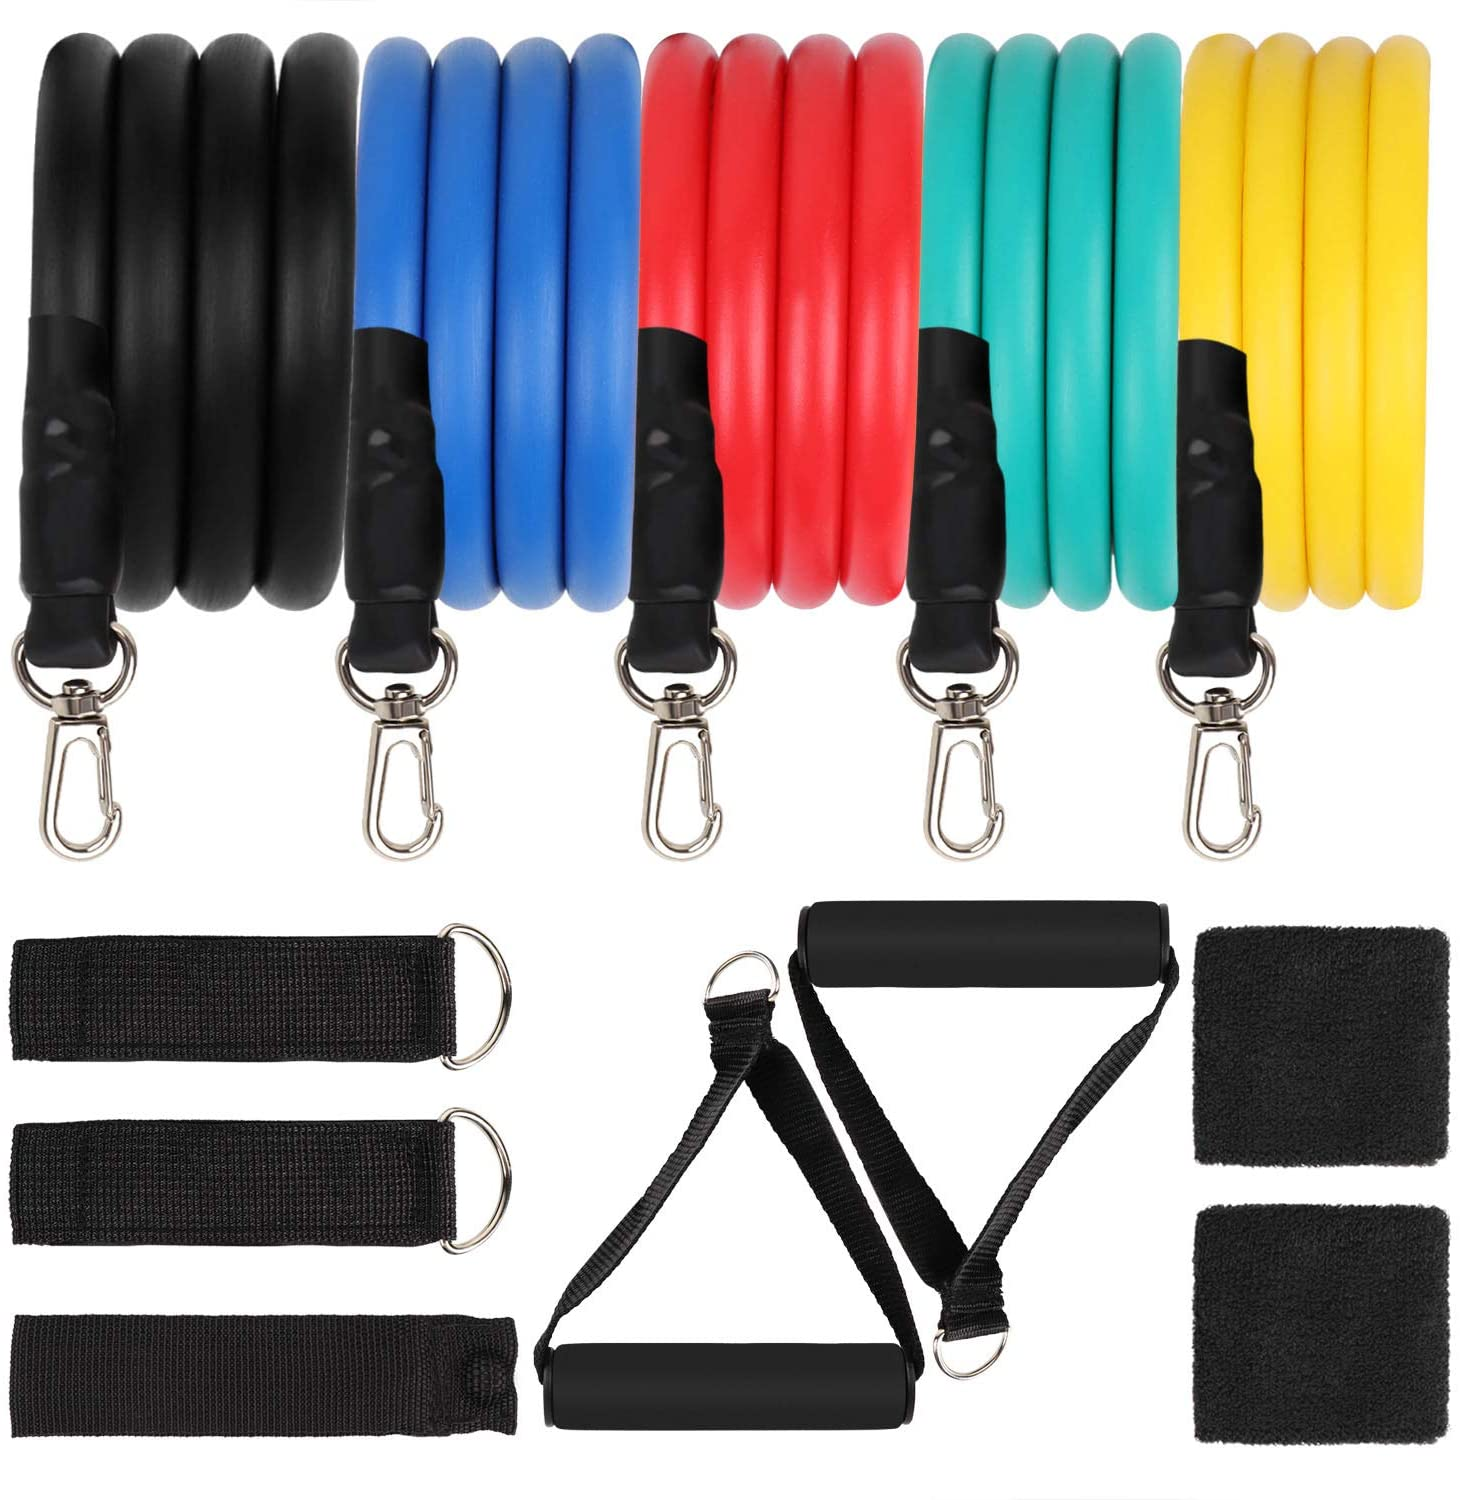 AIFHI 12PCS Exercise Resistance Bands Set Home Gym Accessories with Door Anchor, Handles, Waterproof Carry Bag, Legs Ankle Straps,Bracers for Resistance Training 100lbs